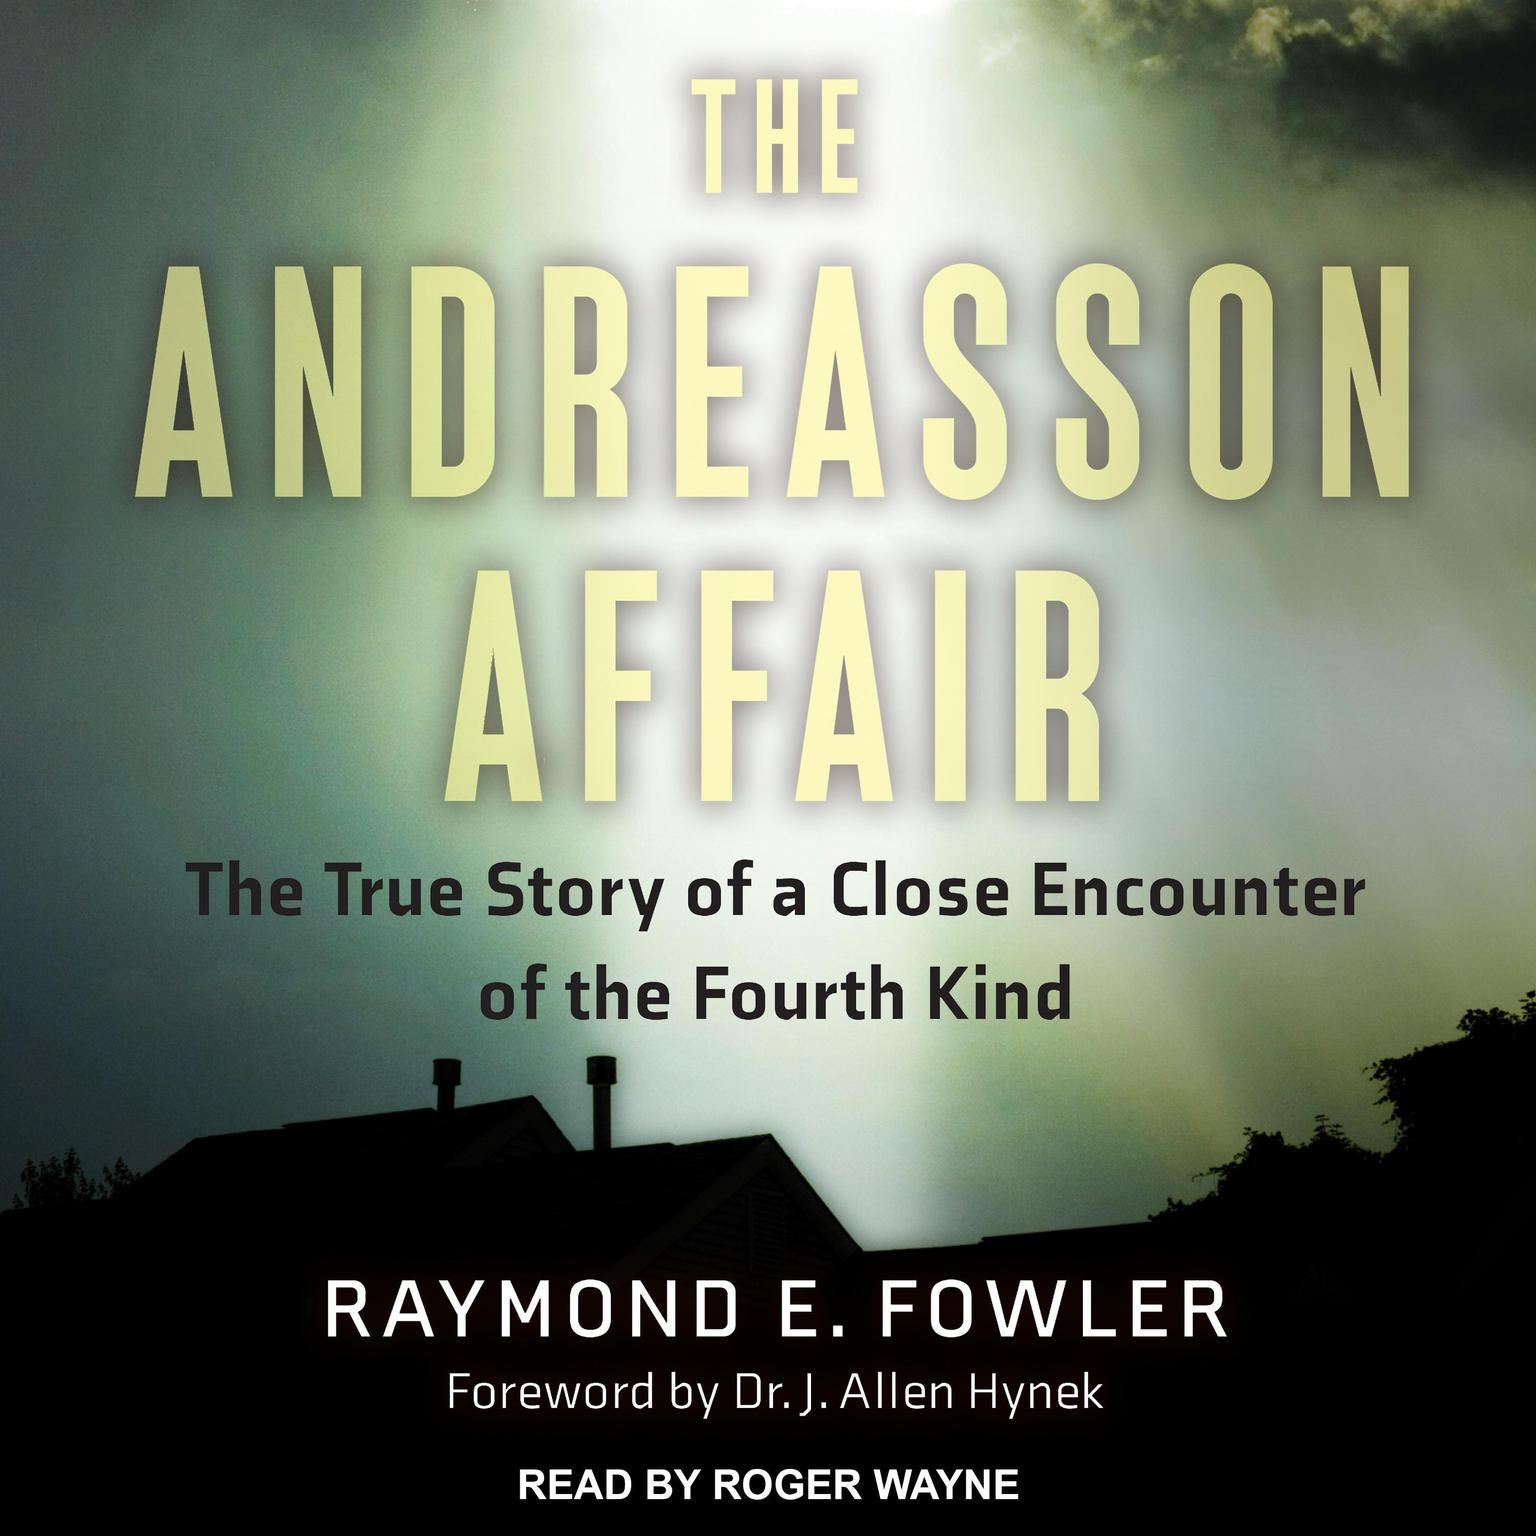 The Andreasson Affair: The True Story of a Close Encounter of the Fourth Kind Audiobook, by Raymond E. Fowler